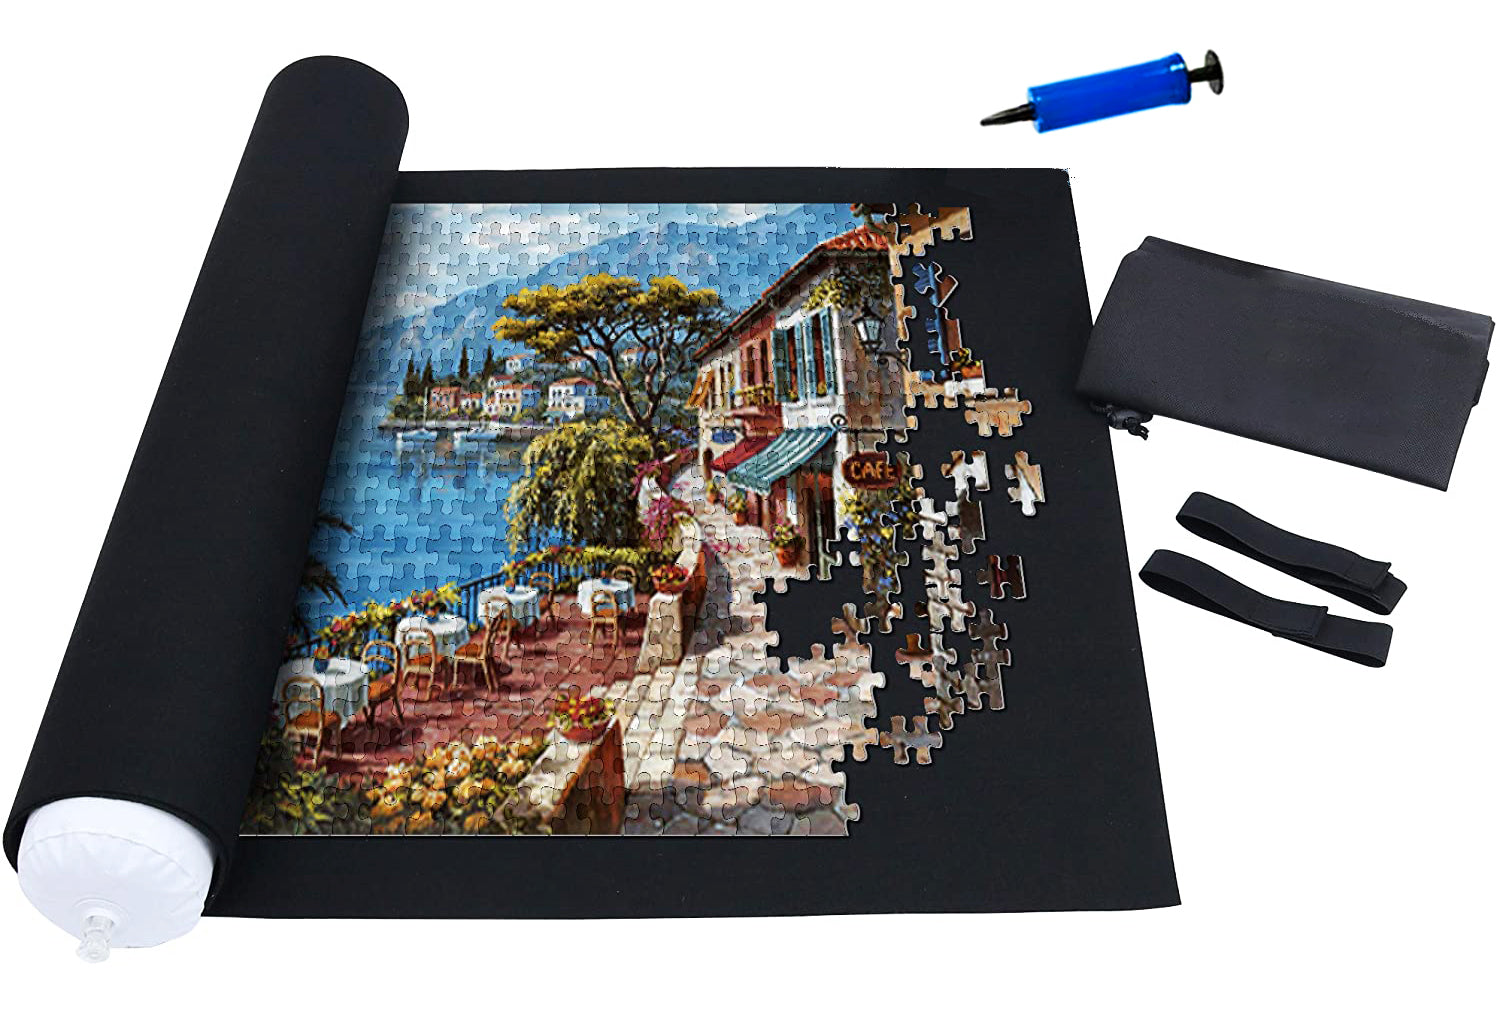 Jigsaw Puzzle Pause Roll Up Storage Mat Set - Rest In Pieces